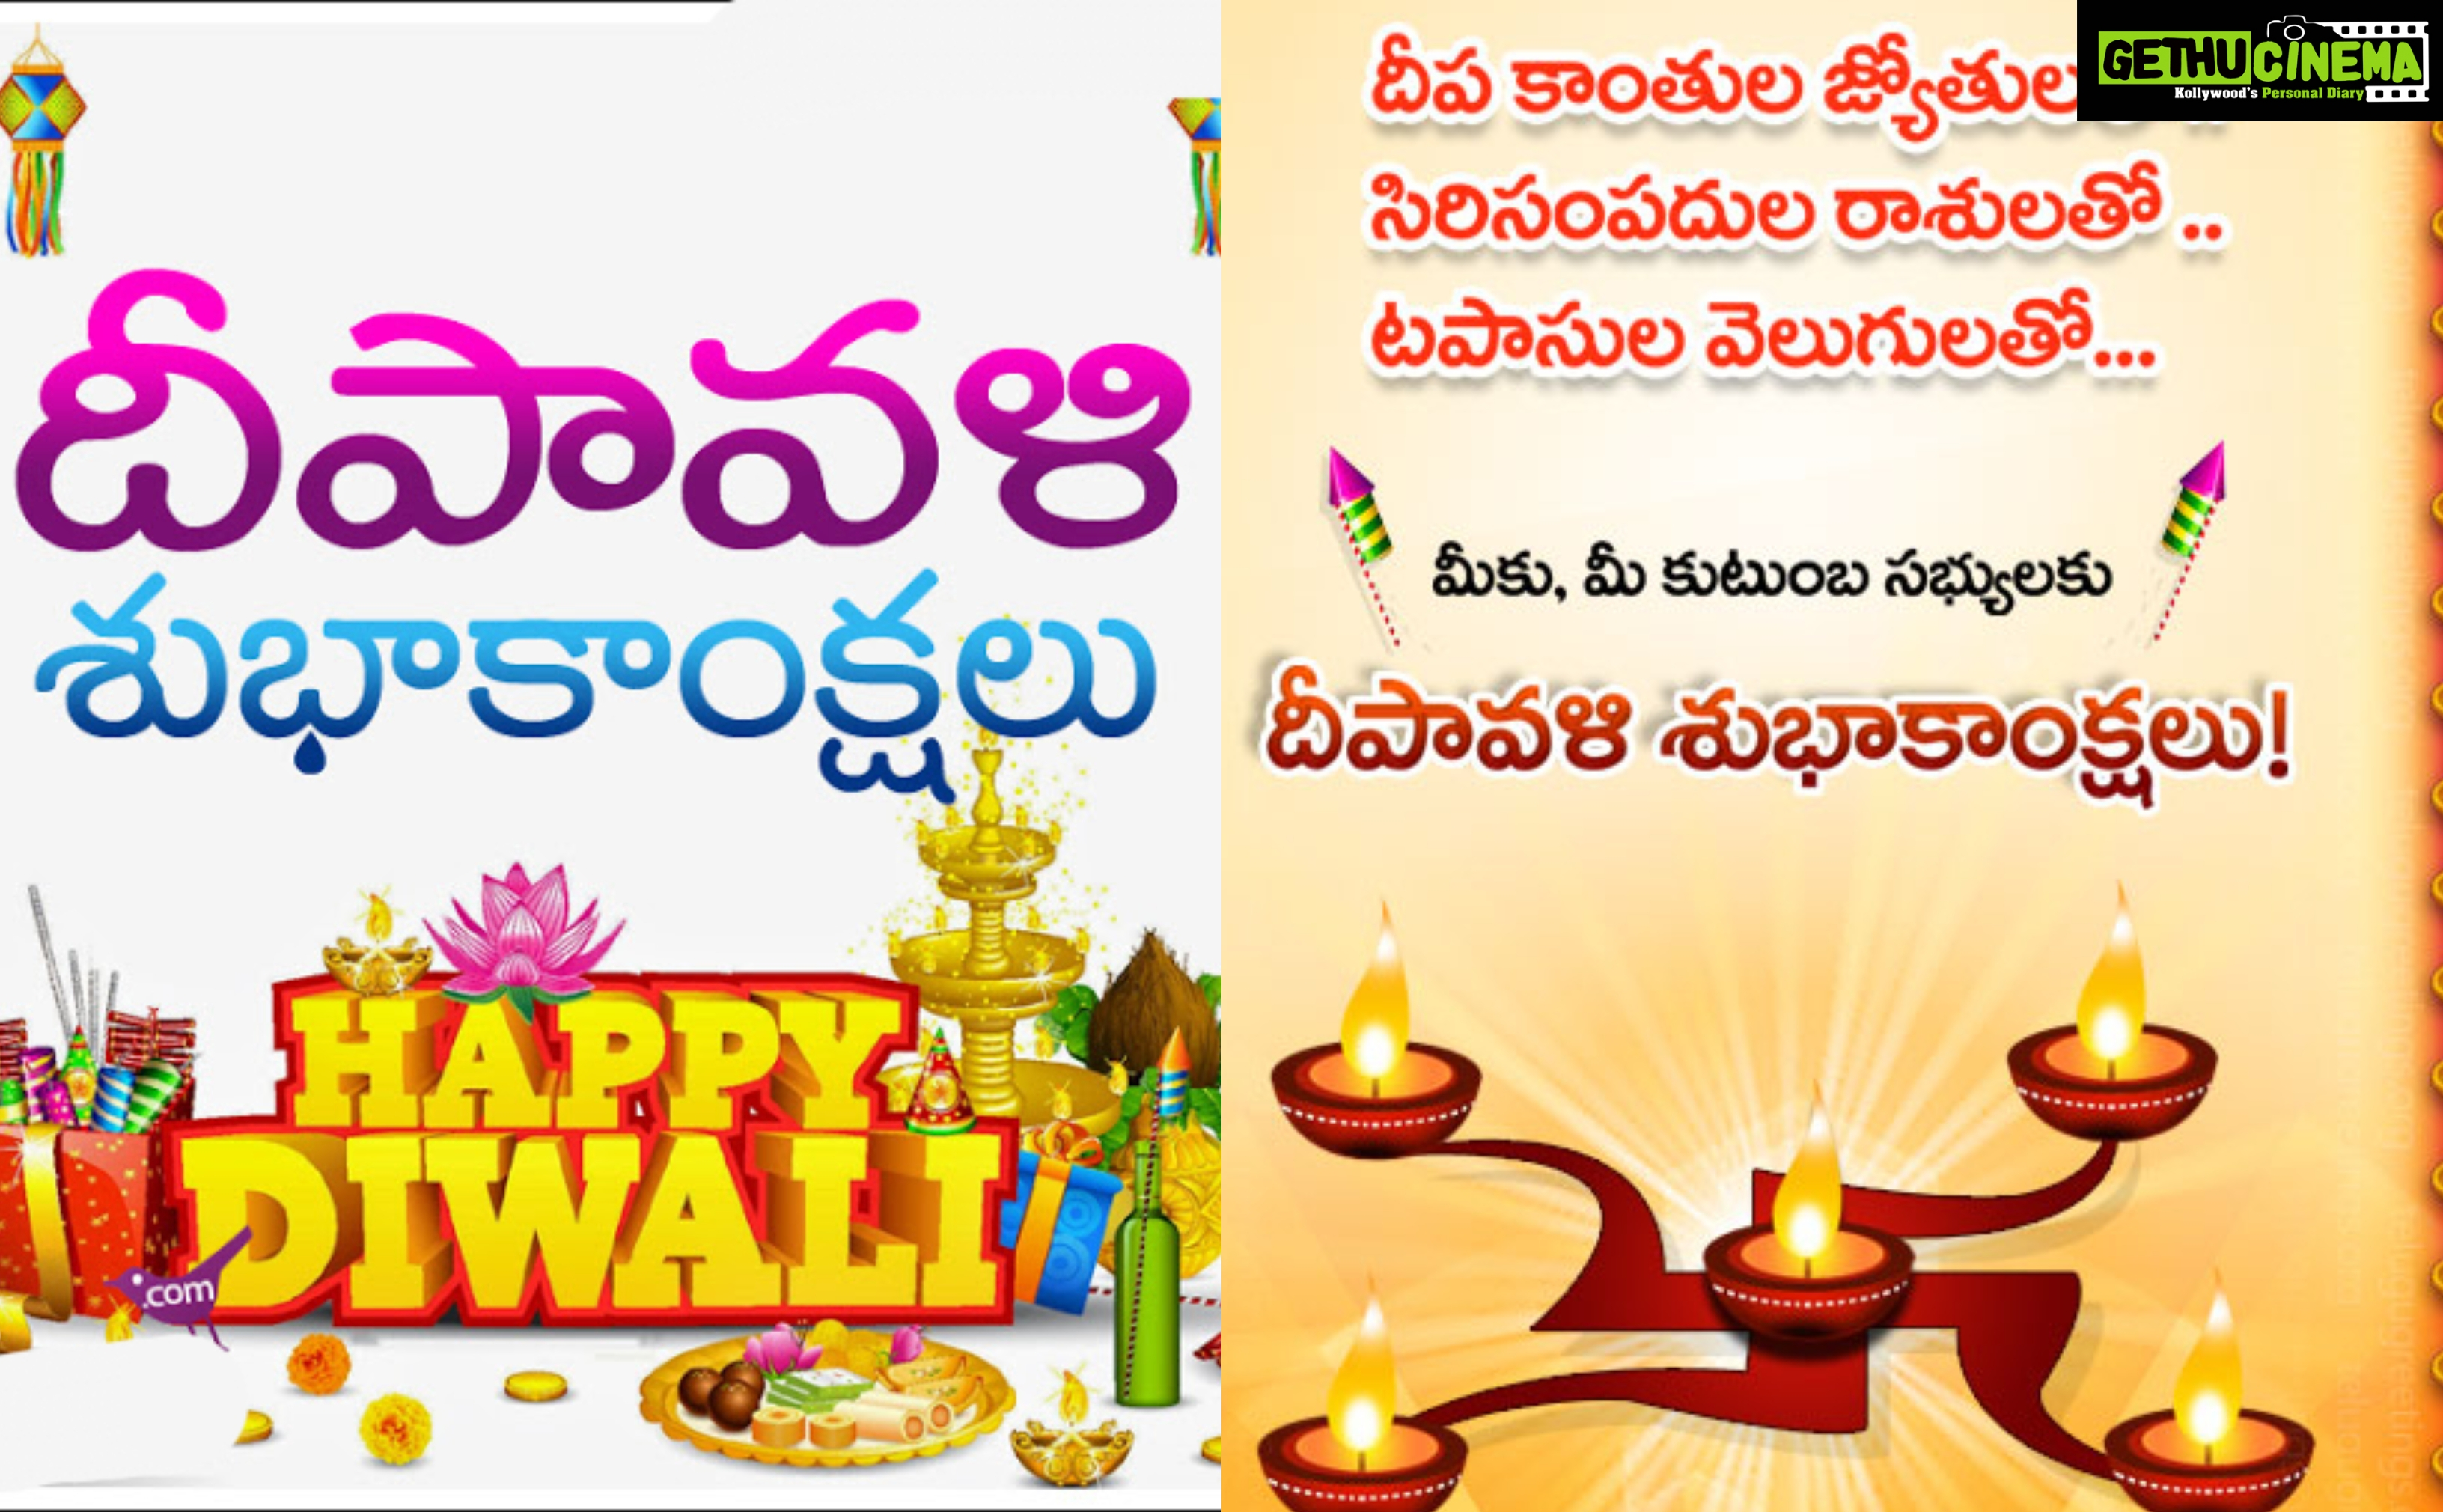 50+ Happy Diwali 2018 Images Wishes, Greetings and Quotes in Telugu